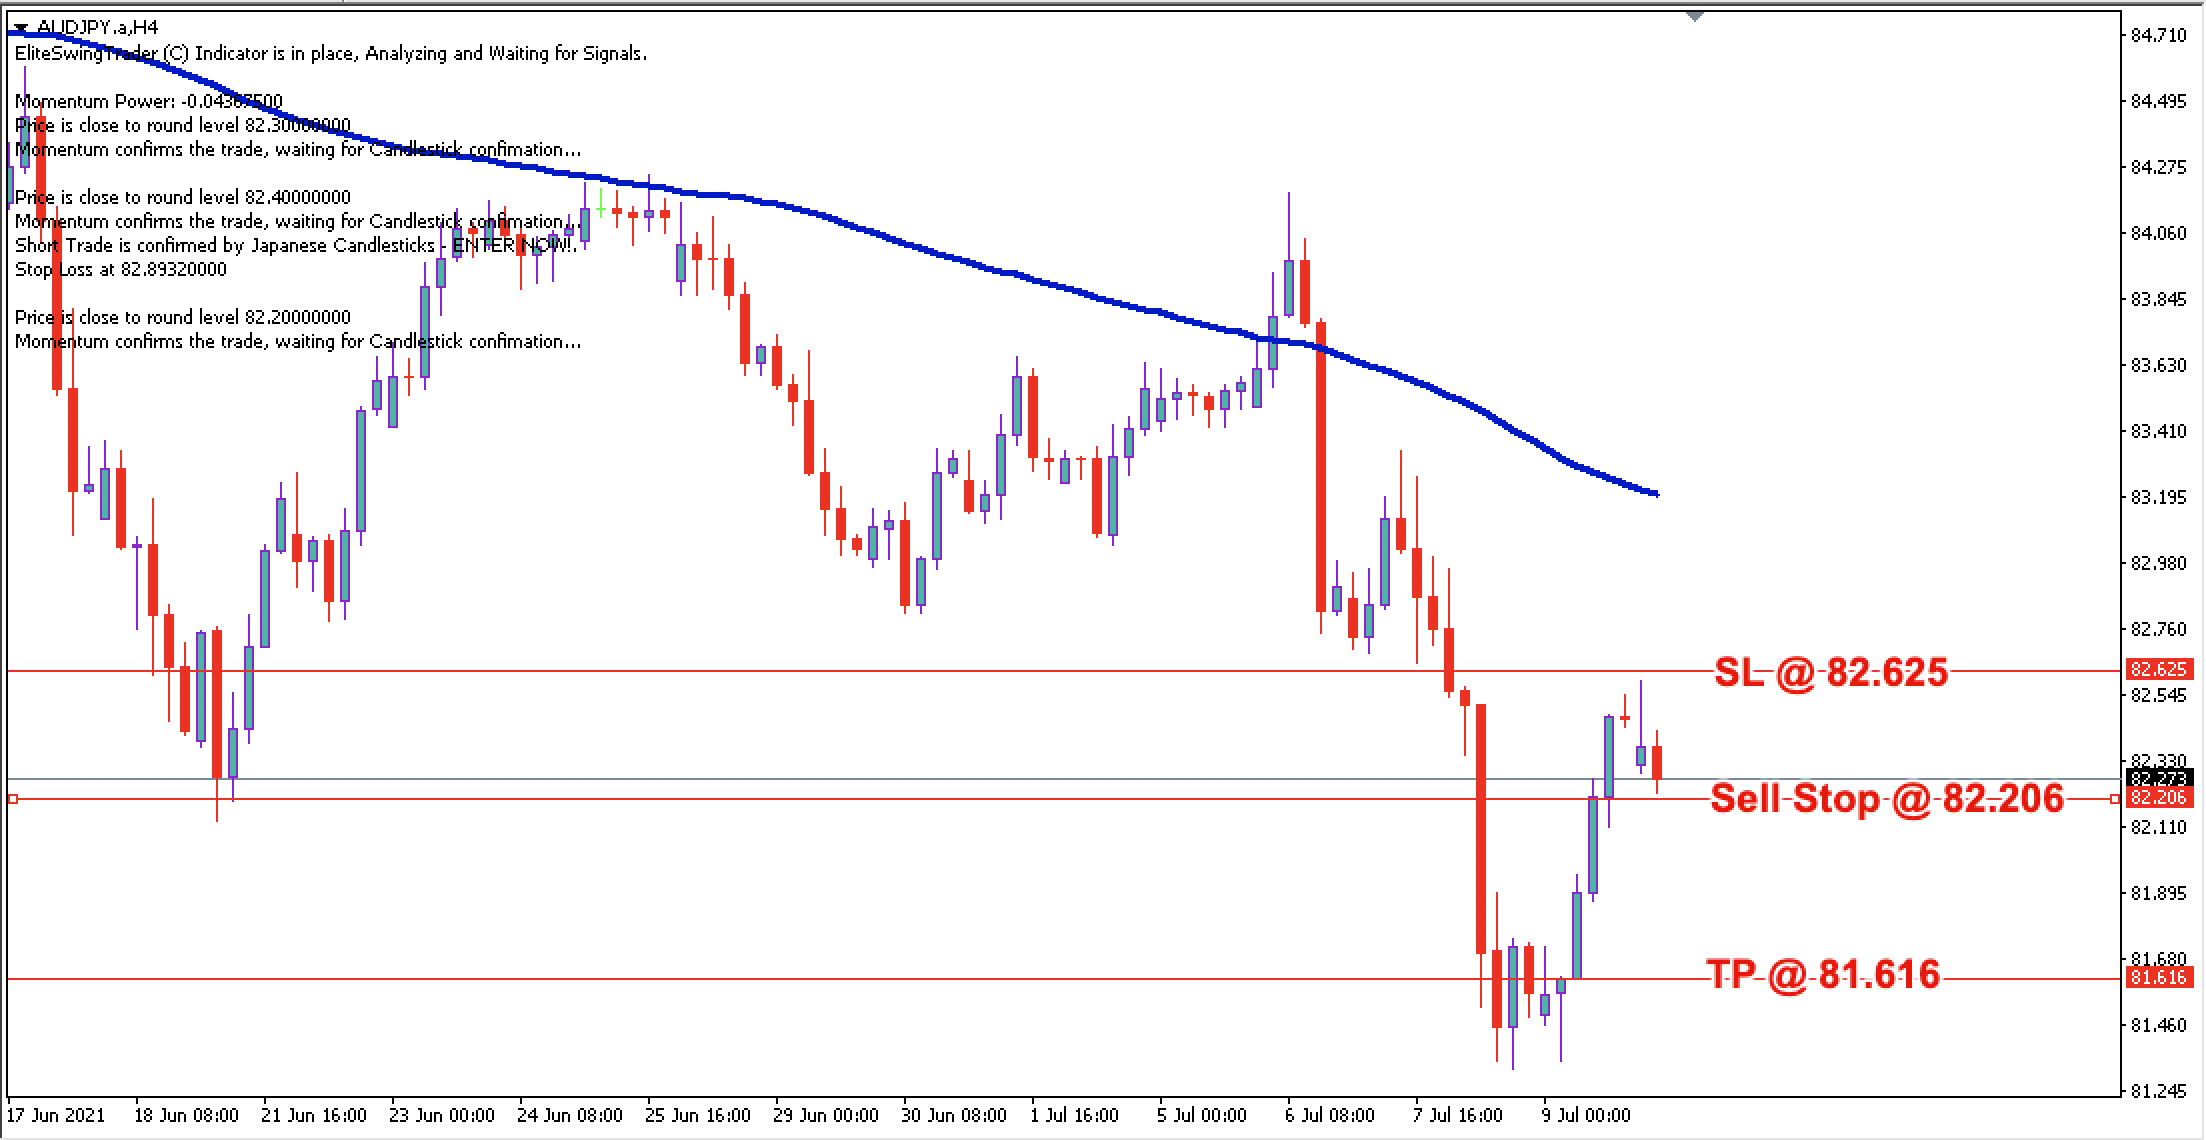 AUD/JPY Daily Price Forecast – 12th July 2021